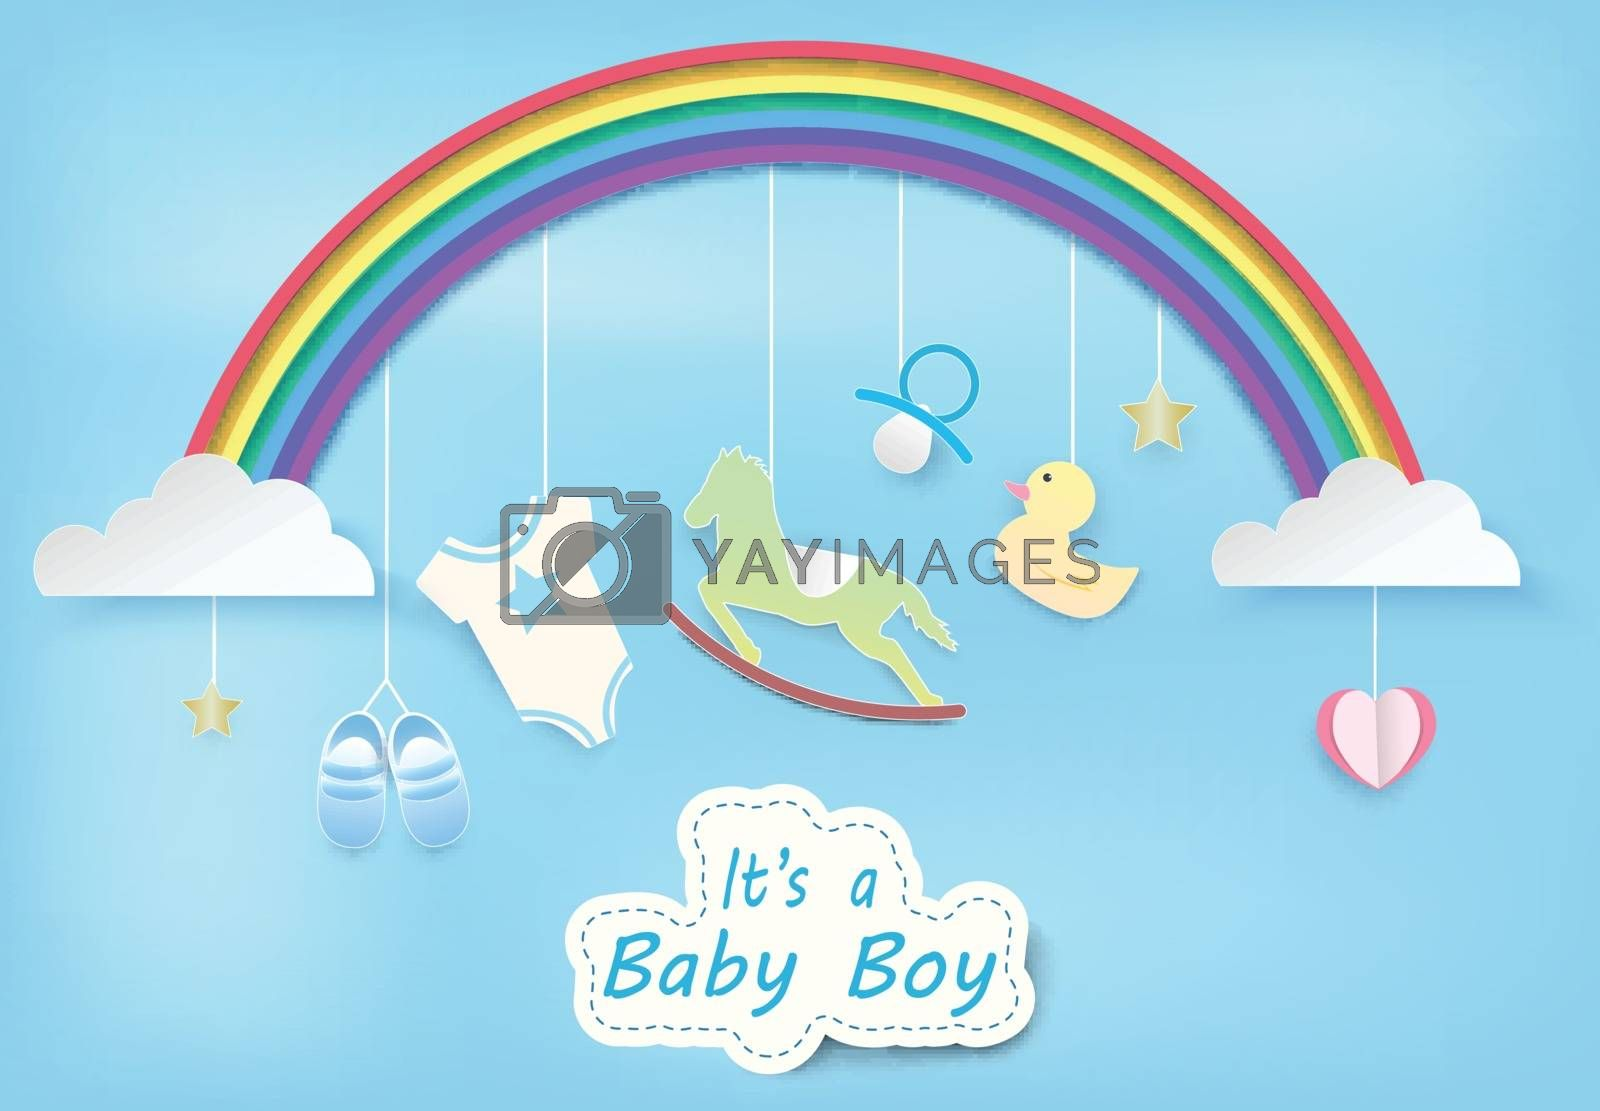 Paper art of rainbow with baby boy shower on blue sky paper cut style illustration